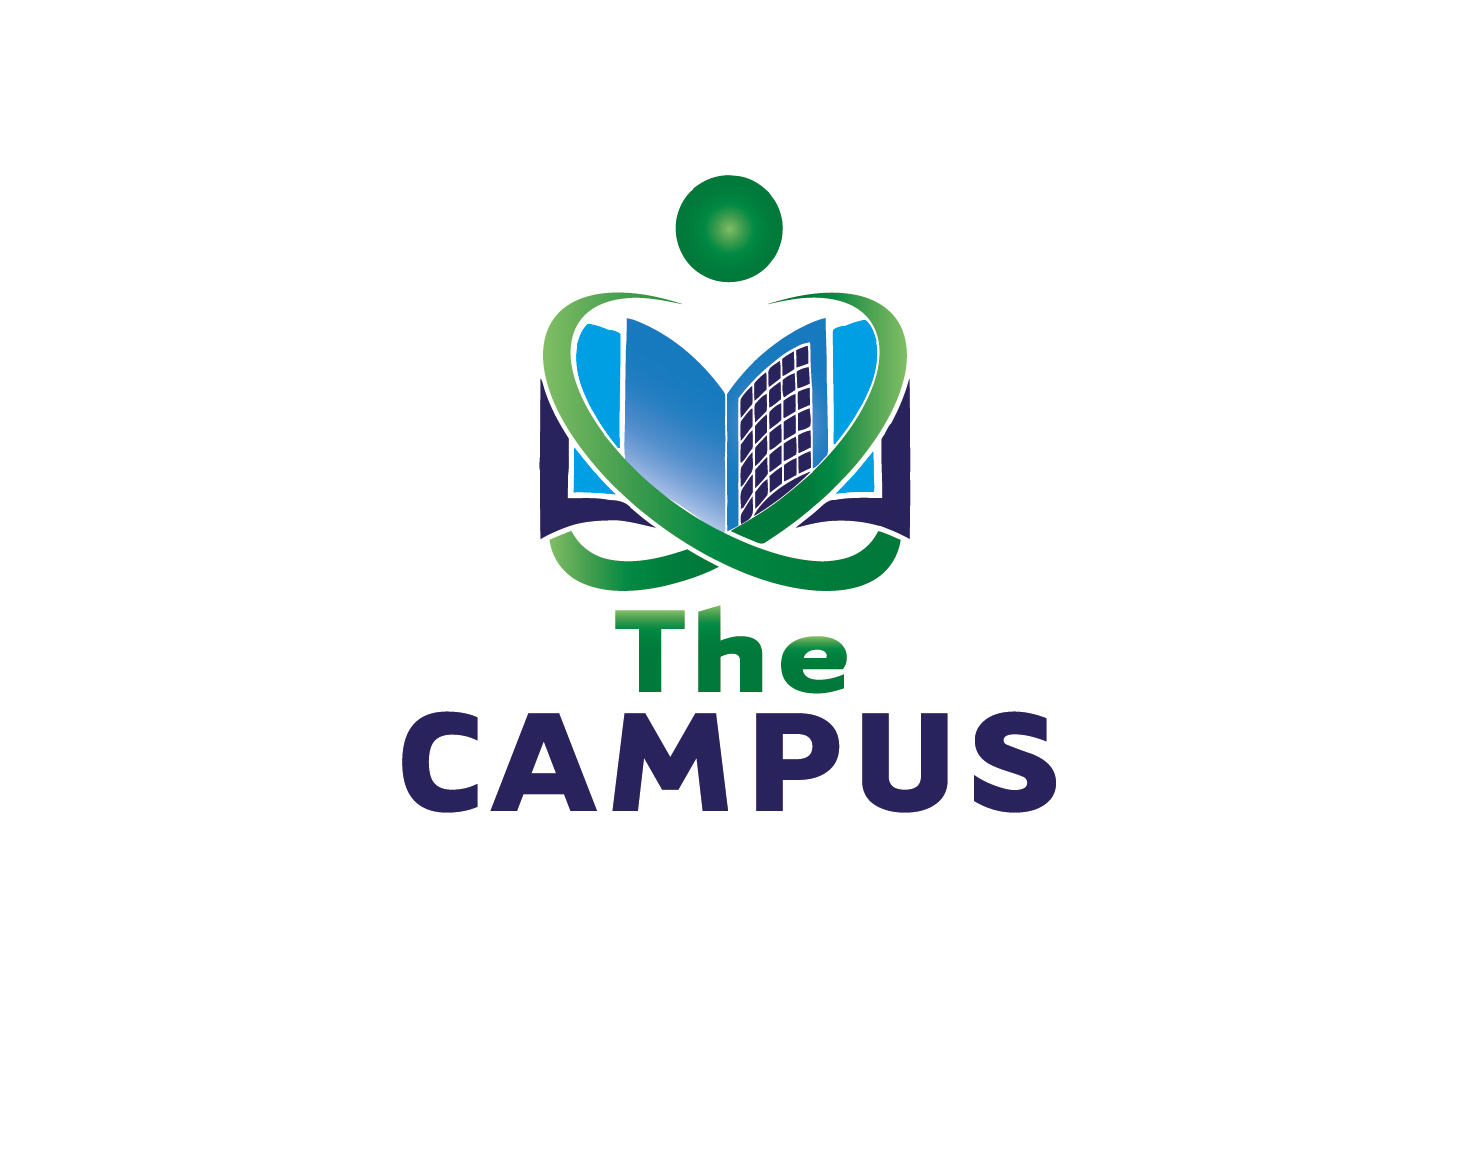 Logo Design by VENTSISLAV KOVACHEV - Entry No. 88 in the Logo Design Contest theCampus Logo Design.